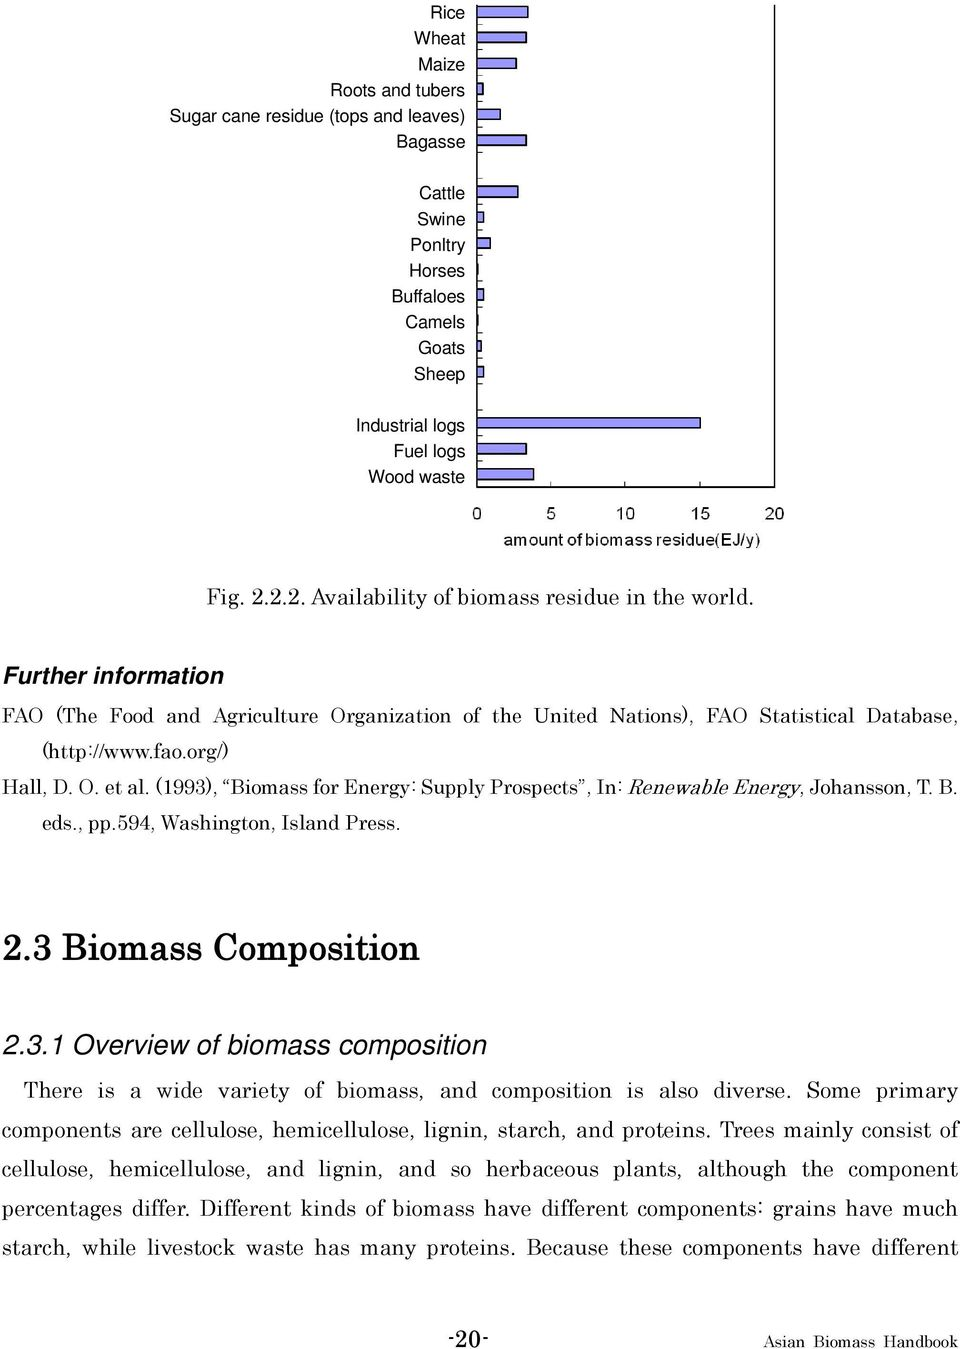 (1993), Biomass for Energy: Supply Prospects, In: Renewable Energy, Johansson, T. B. eds., pp.594, Washington, Island Press. 2.3 Biomass Composition 2.3.1 Overview of biomass composition There is a wide variety of biomass, and composition is also diverse.